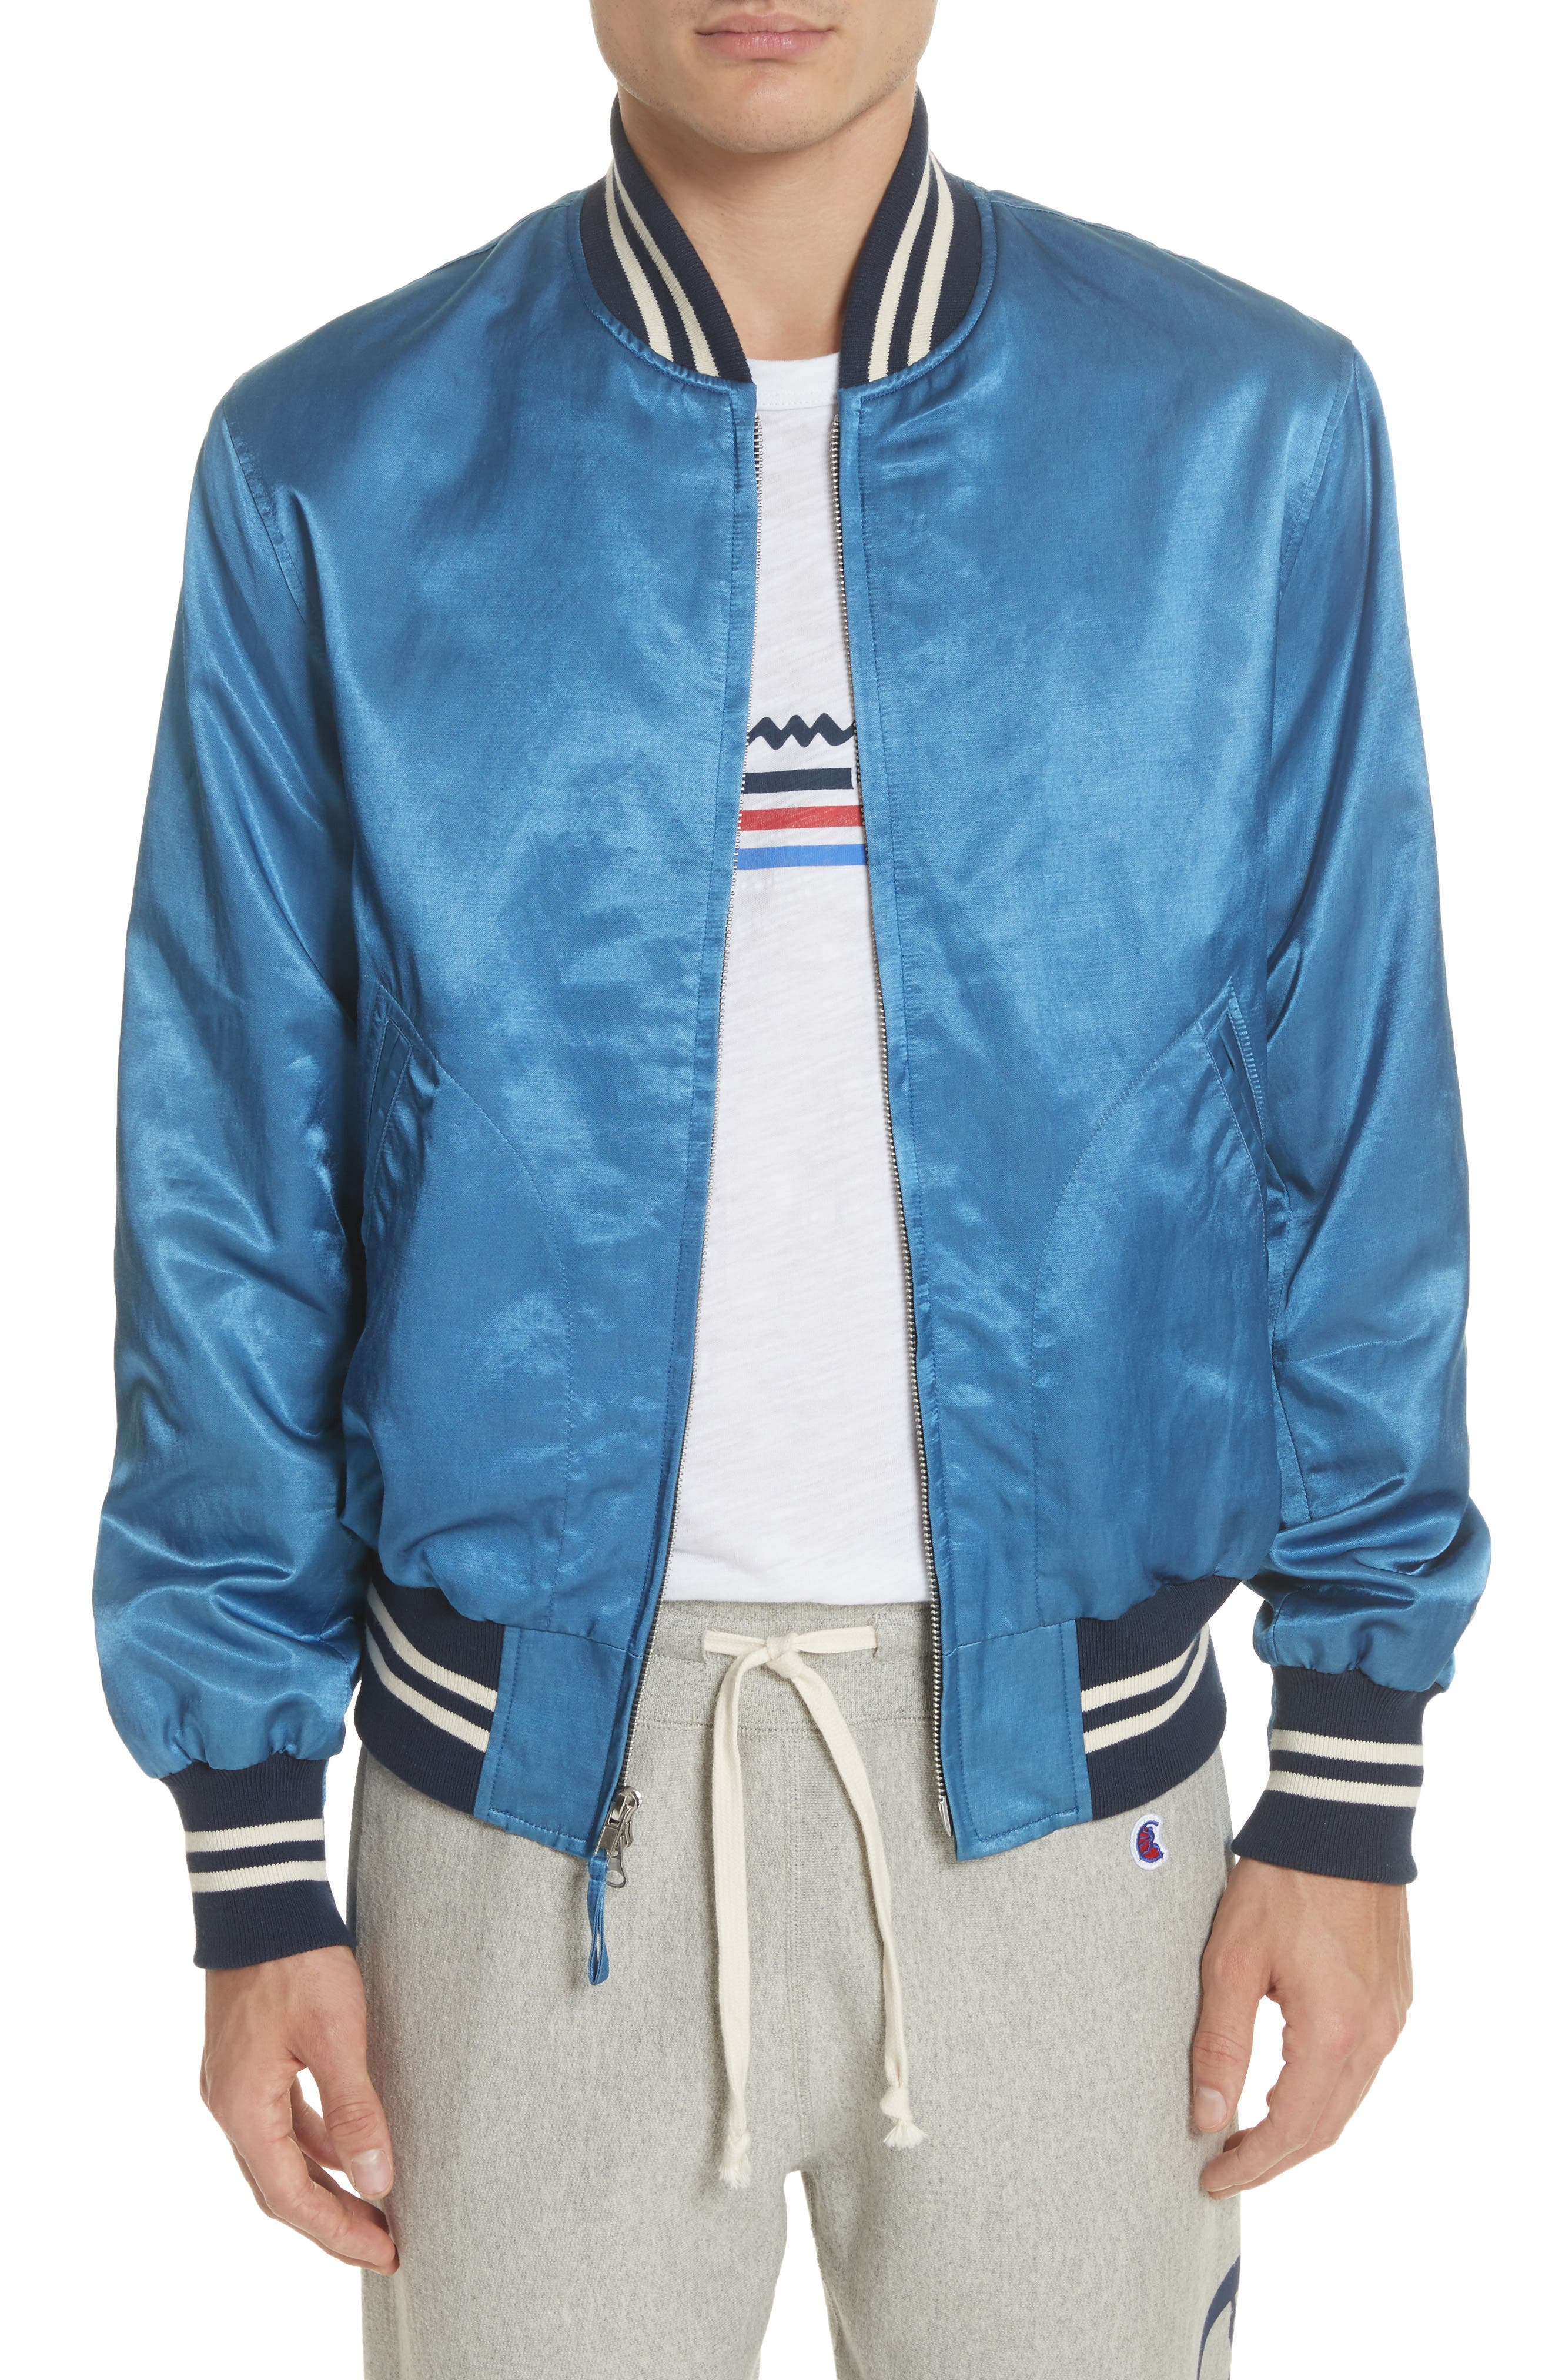 Todd Snyder + Champion Bomber Jacket